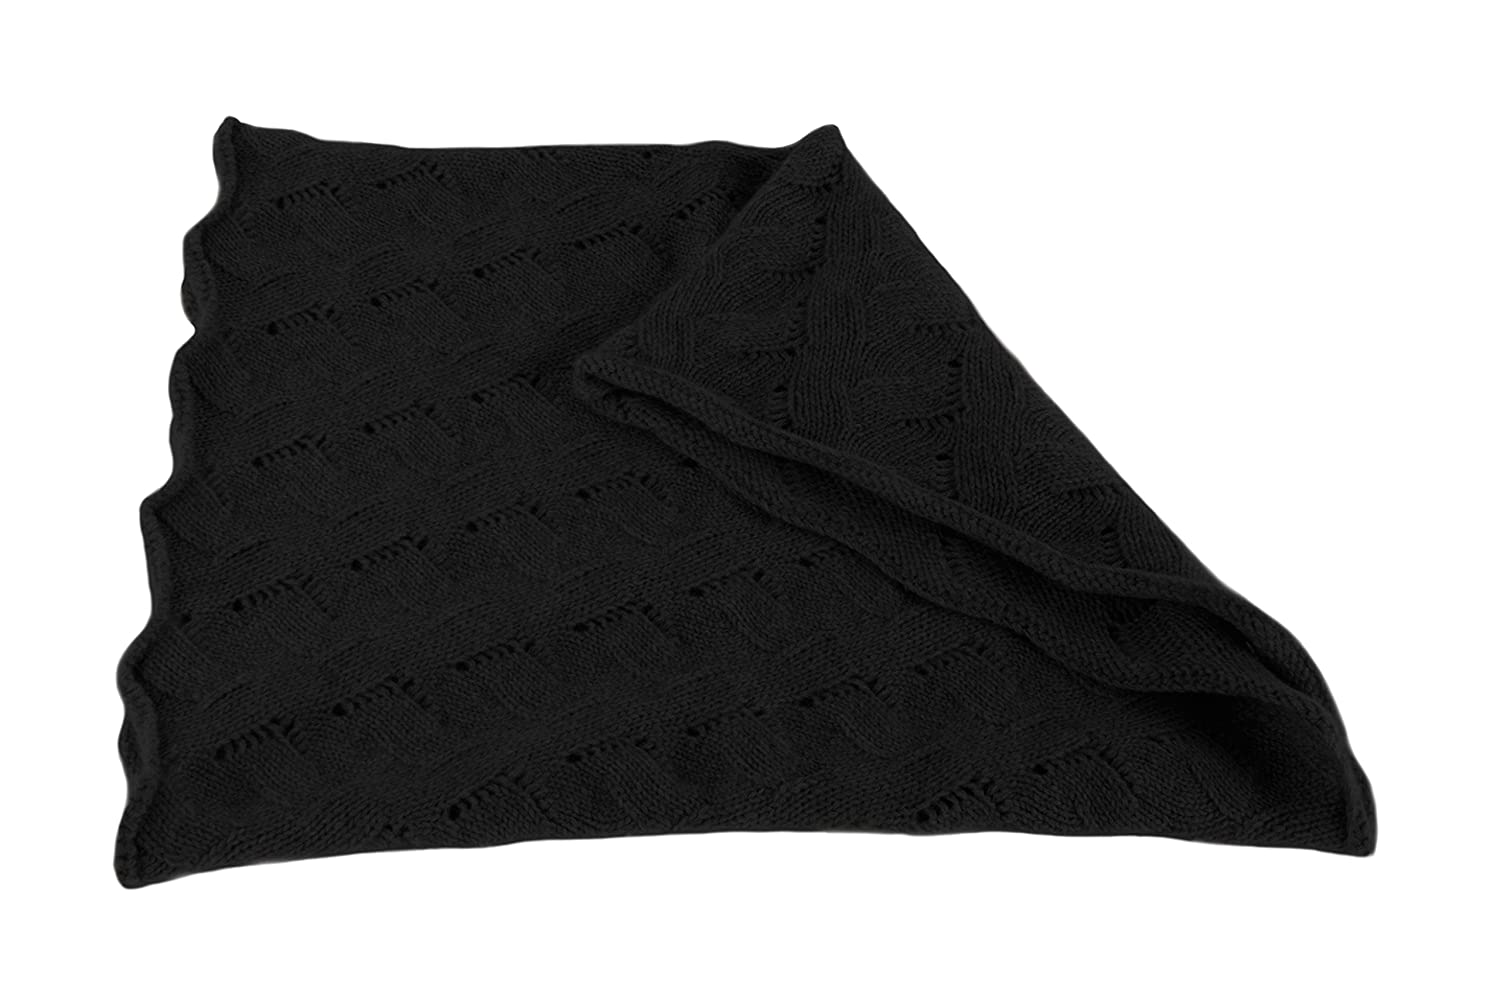 Womens 100/% Cashmere Infinity Scarf Snood Black made in Scotland by Love Cashmere RRP $150,One Size,Black LC041/_SCL/_black